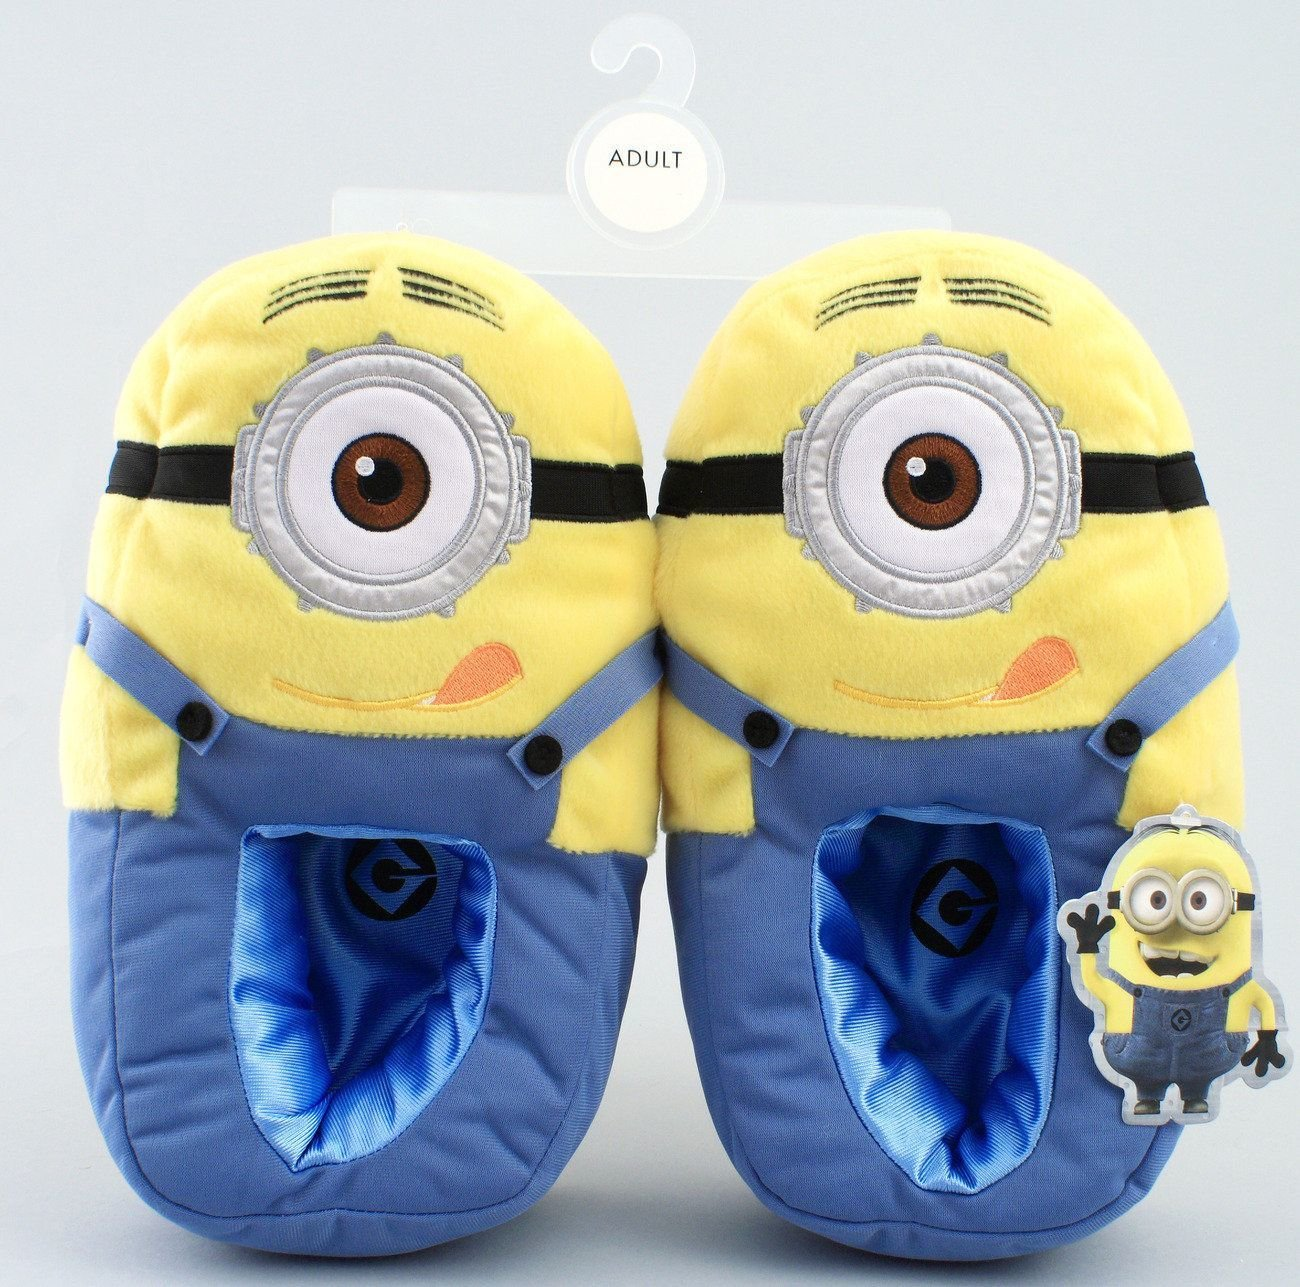 Best Despicable Me Minion Plush Bedroom Slippers Minion Mayhem With Pictures